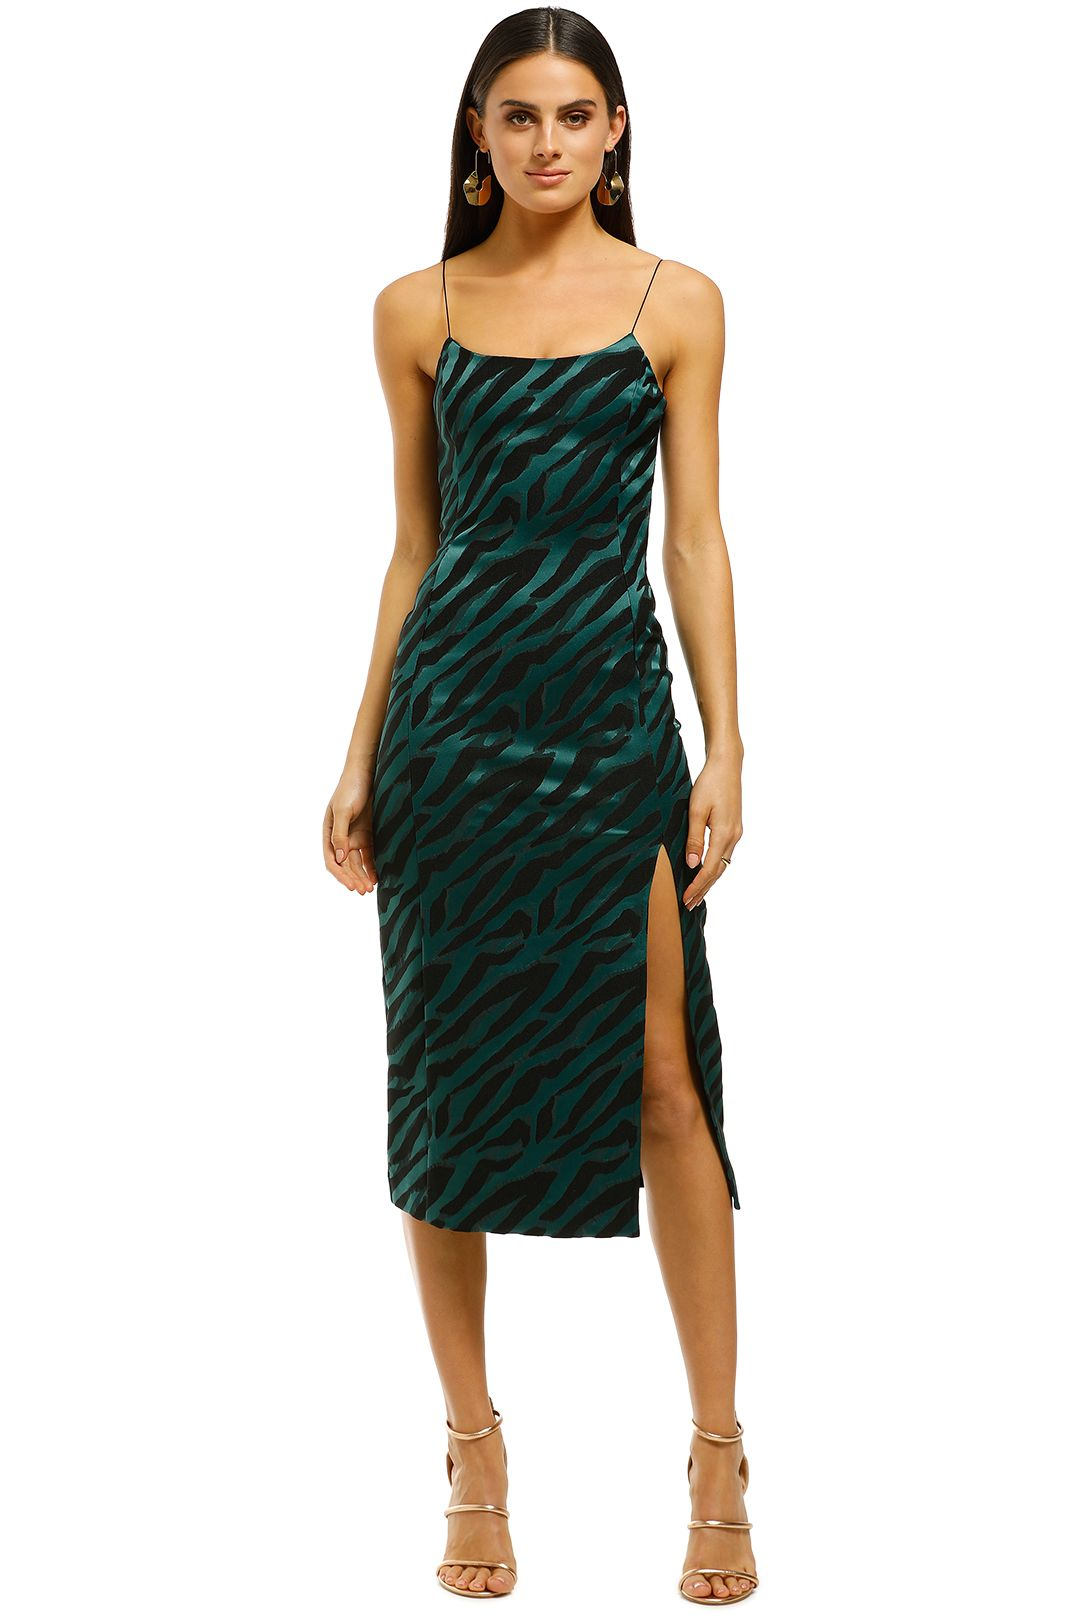 Bec+Bridge-Discotheque-Midi-Dress-Emerald-Zebra-Front